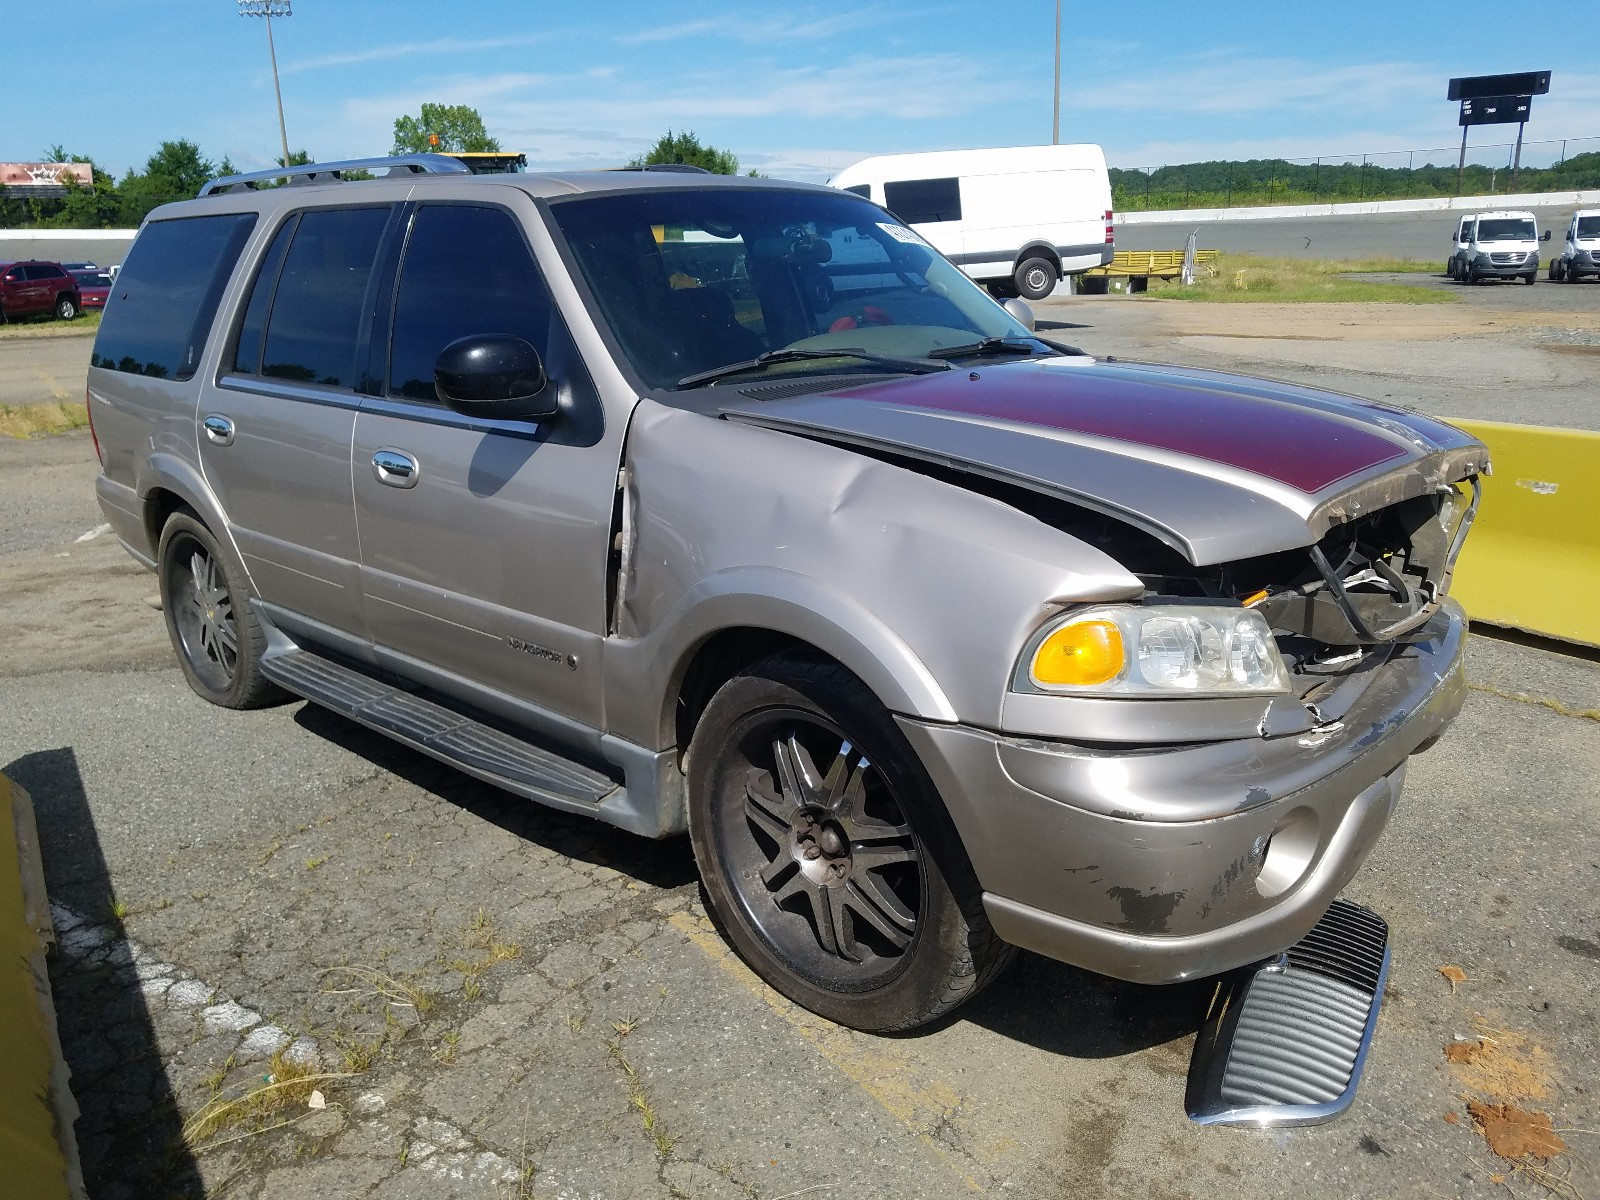 2002 lincoln navigator for sale at copart concord nc lot 41274240 salvagereseller com salvagereseller com